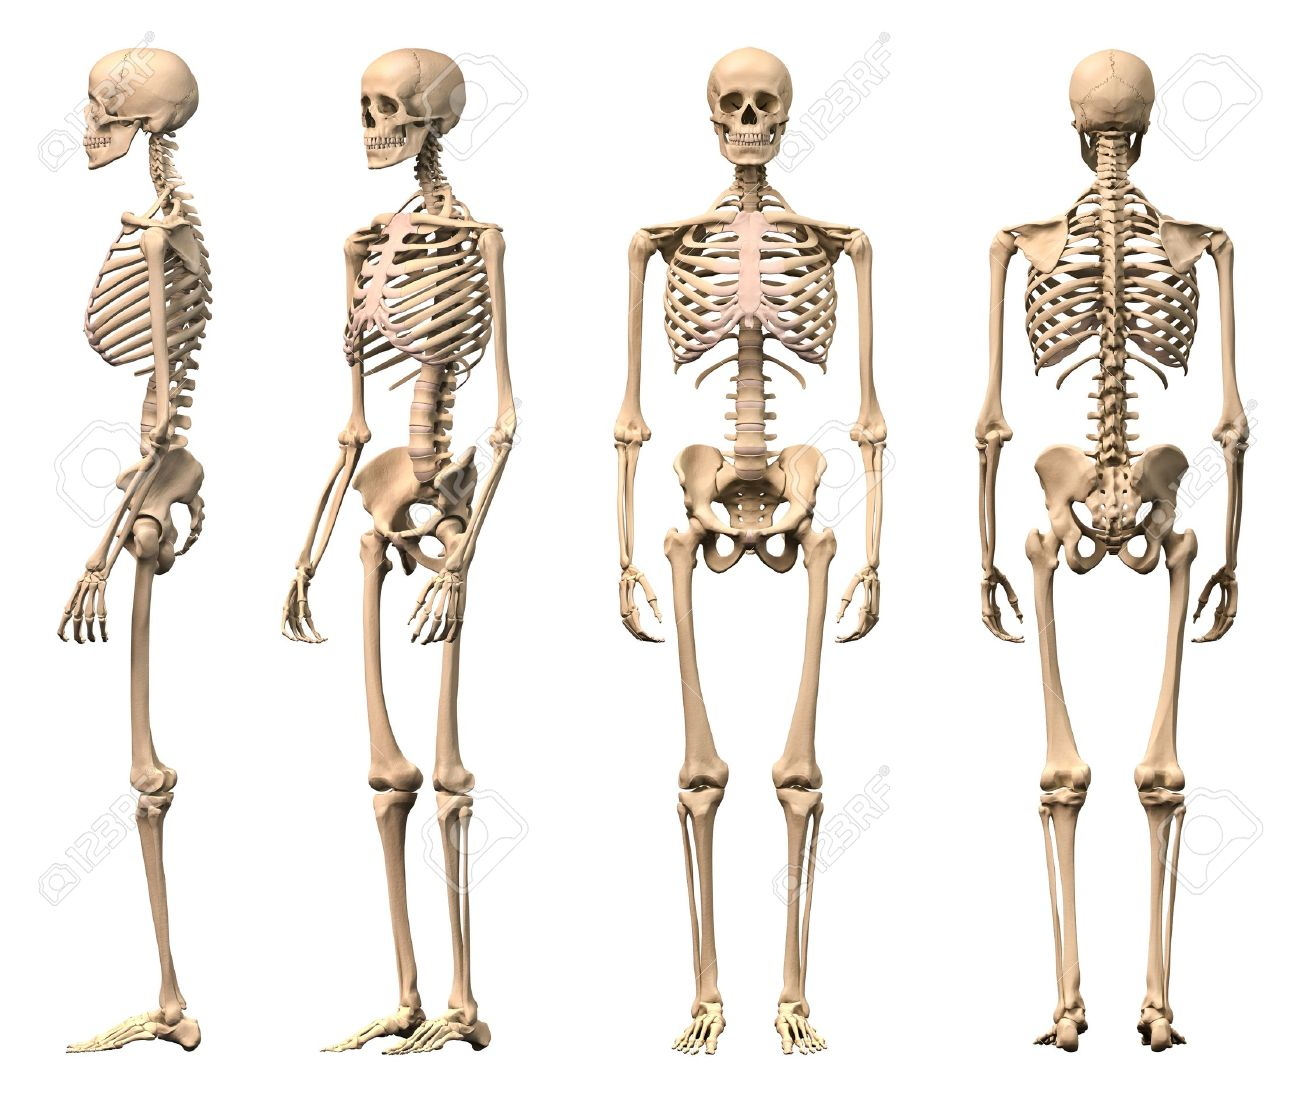 male human skeleton, four views, front, back, side and perspective, Skeleton